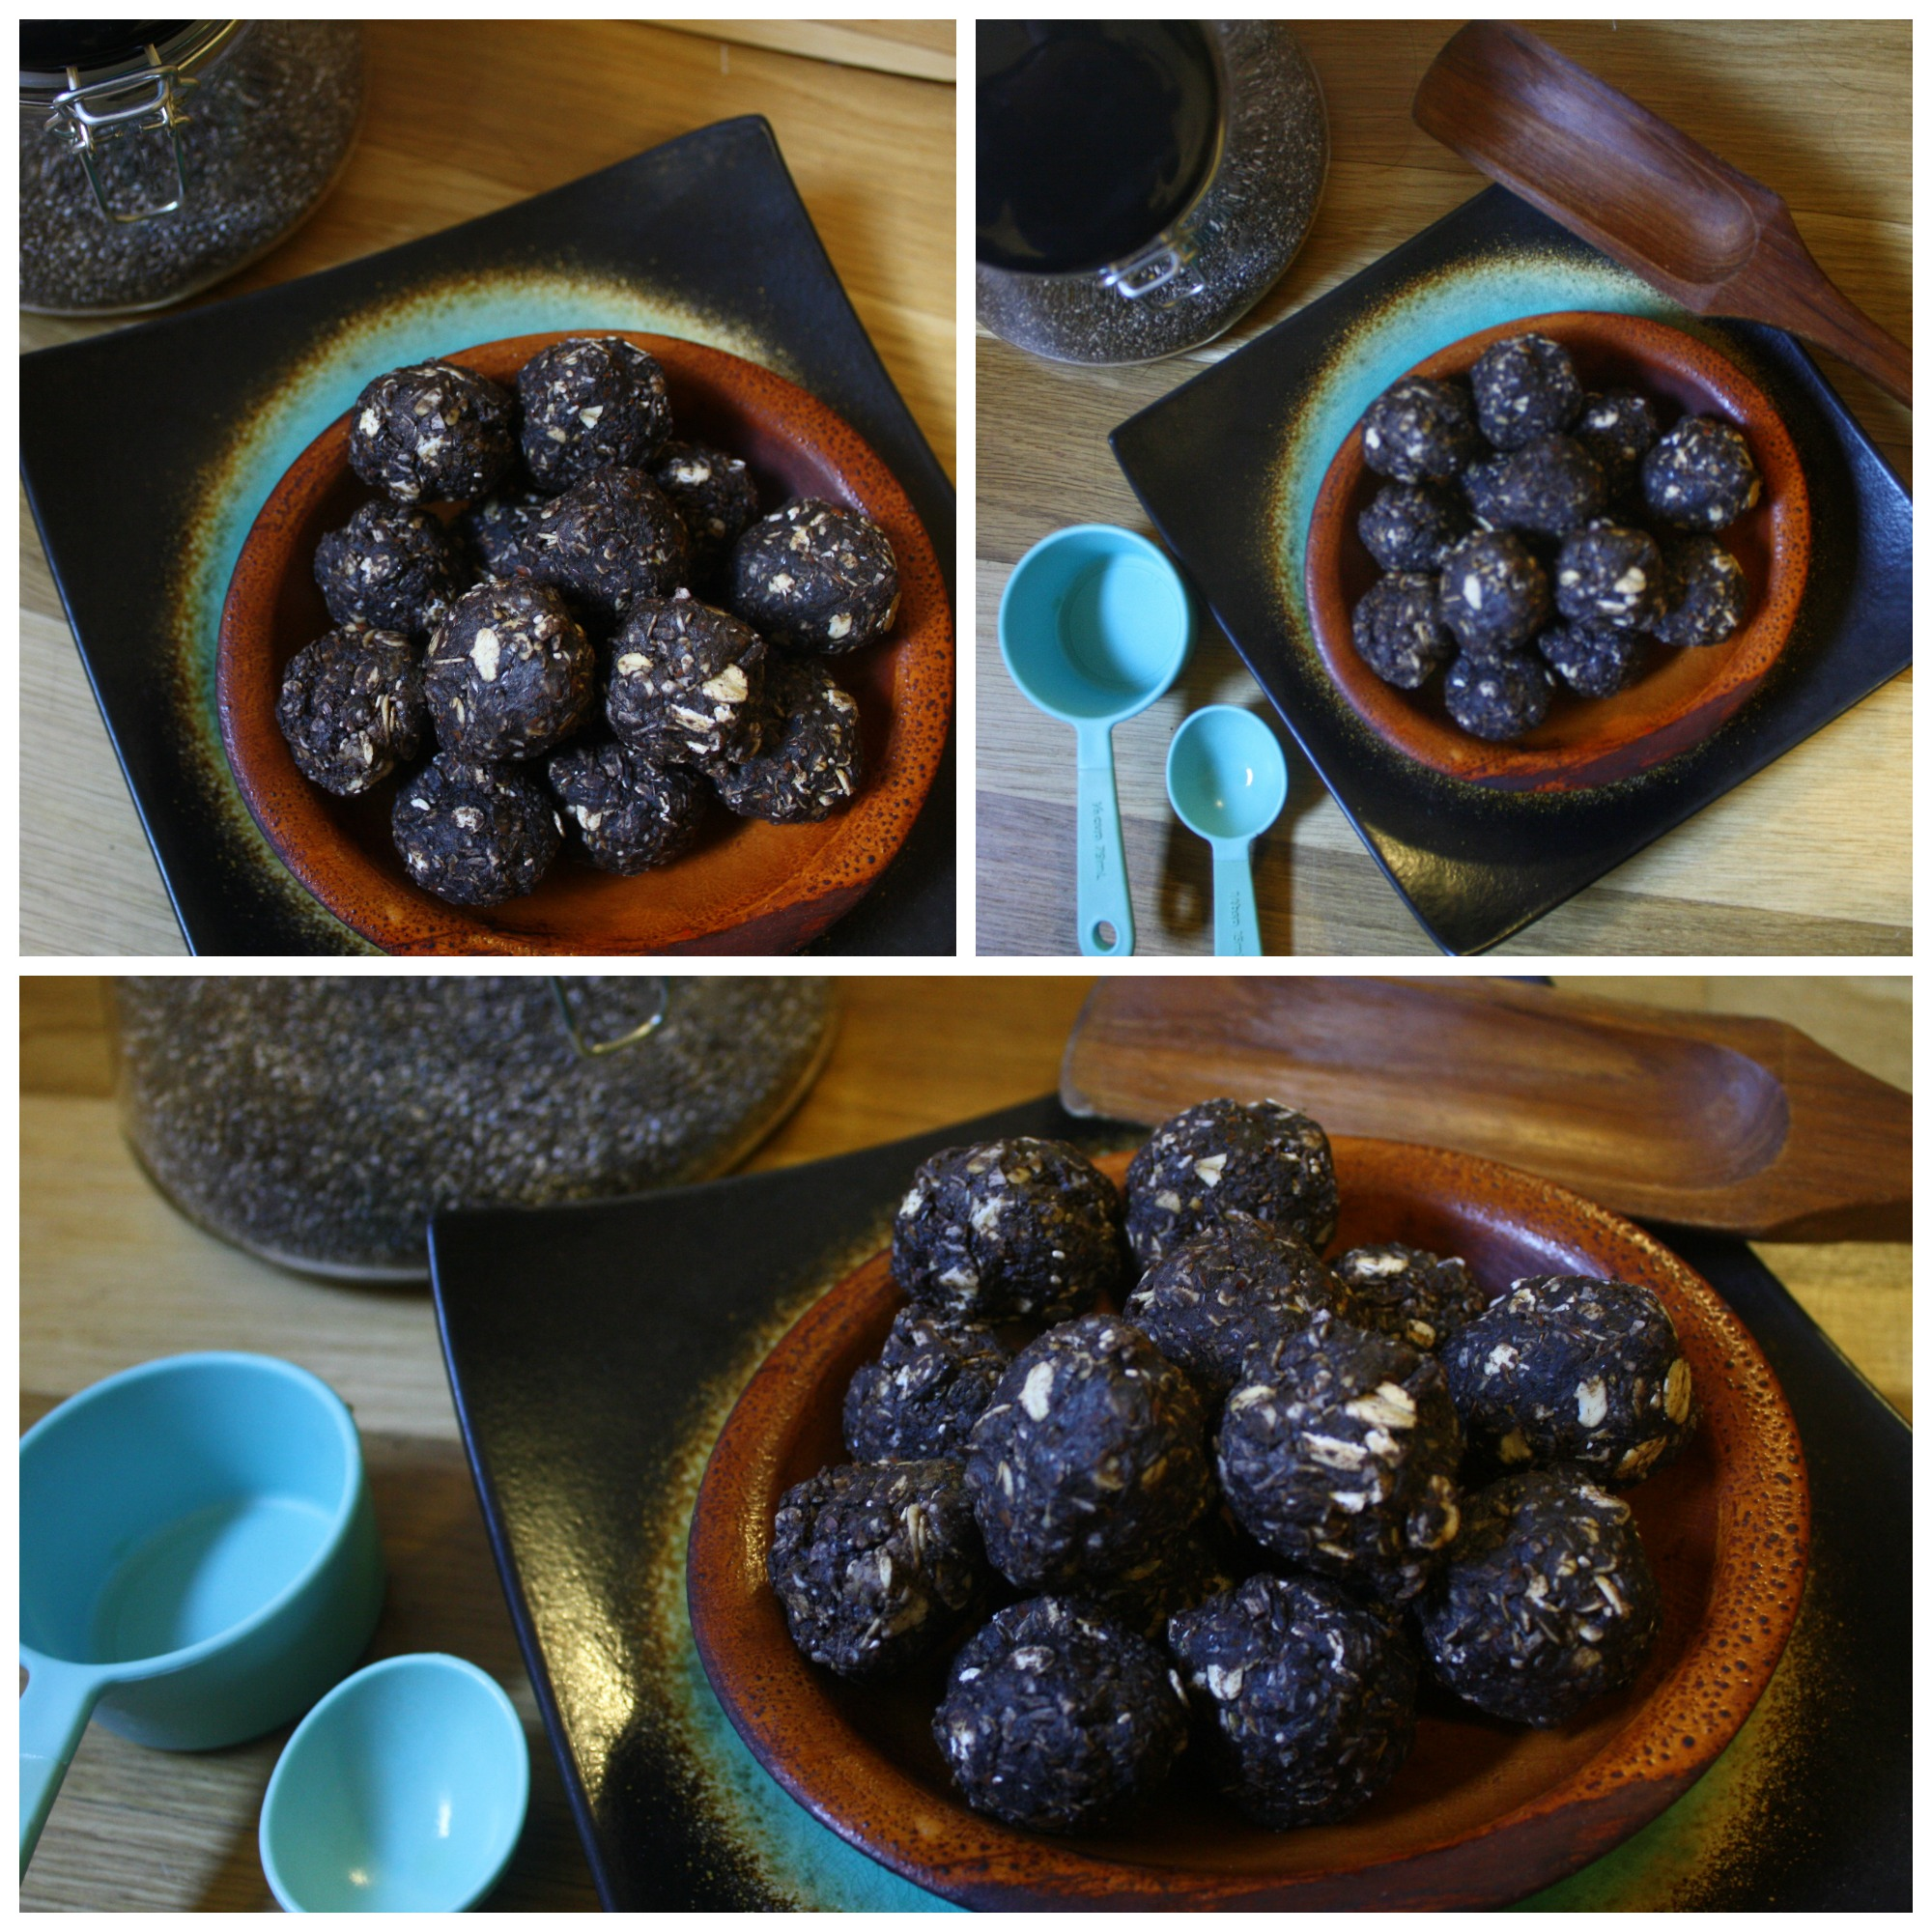 This was my photography session with some  Chocolate Peanut Butter No-Bake Bites  using a recipe from  Gimme Some Oven . Her recipes are a new favorite of mine!